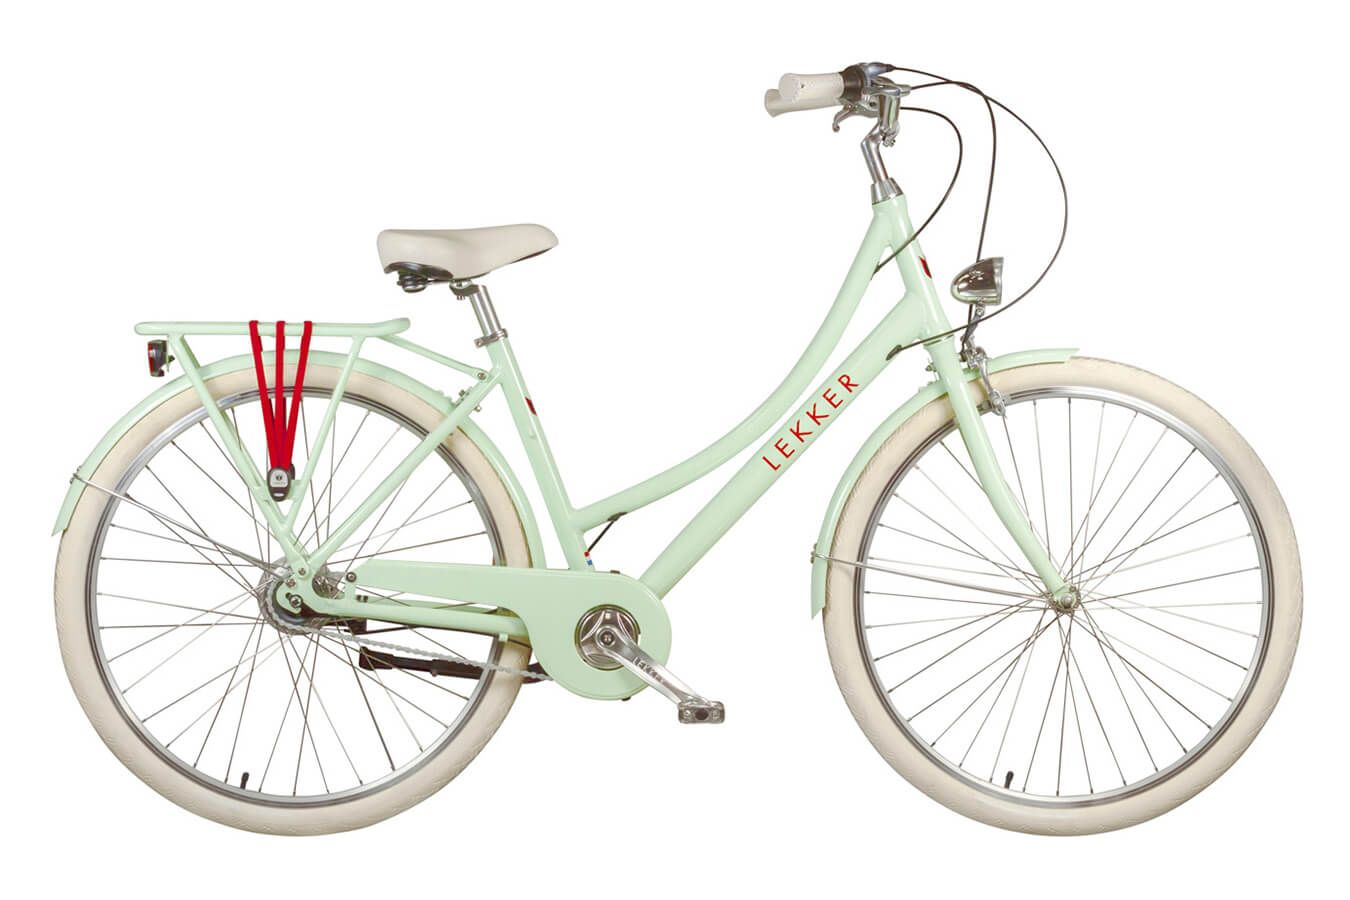 Jordaan Lekker Bikes Retro Vintage Dutch Bike Womens Bicycles Pastel Green Bicycle Dutch Style Bicycle Dutch Bike